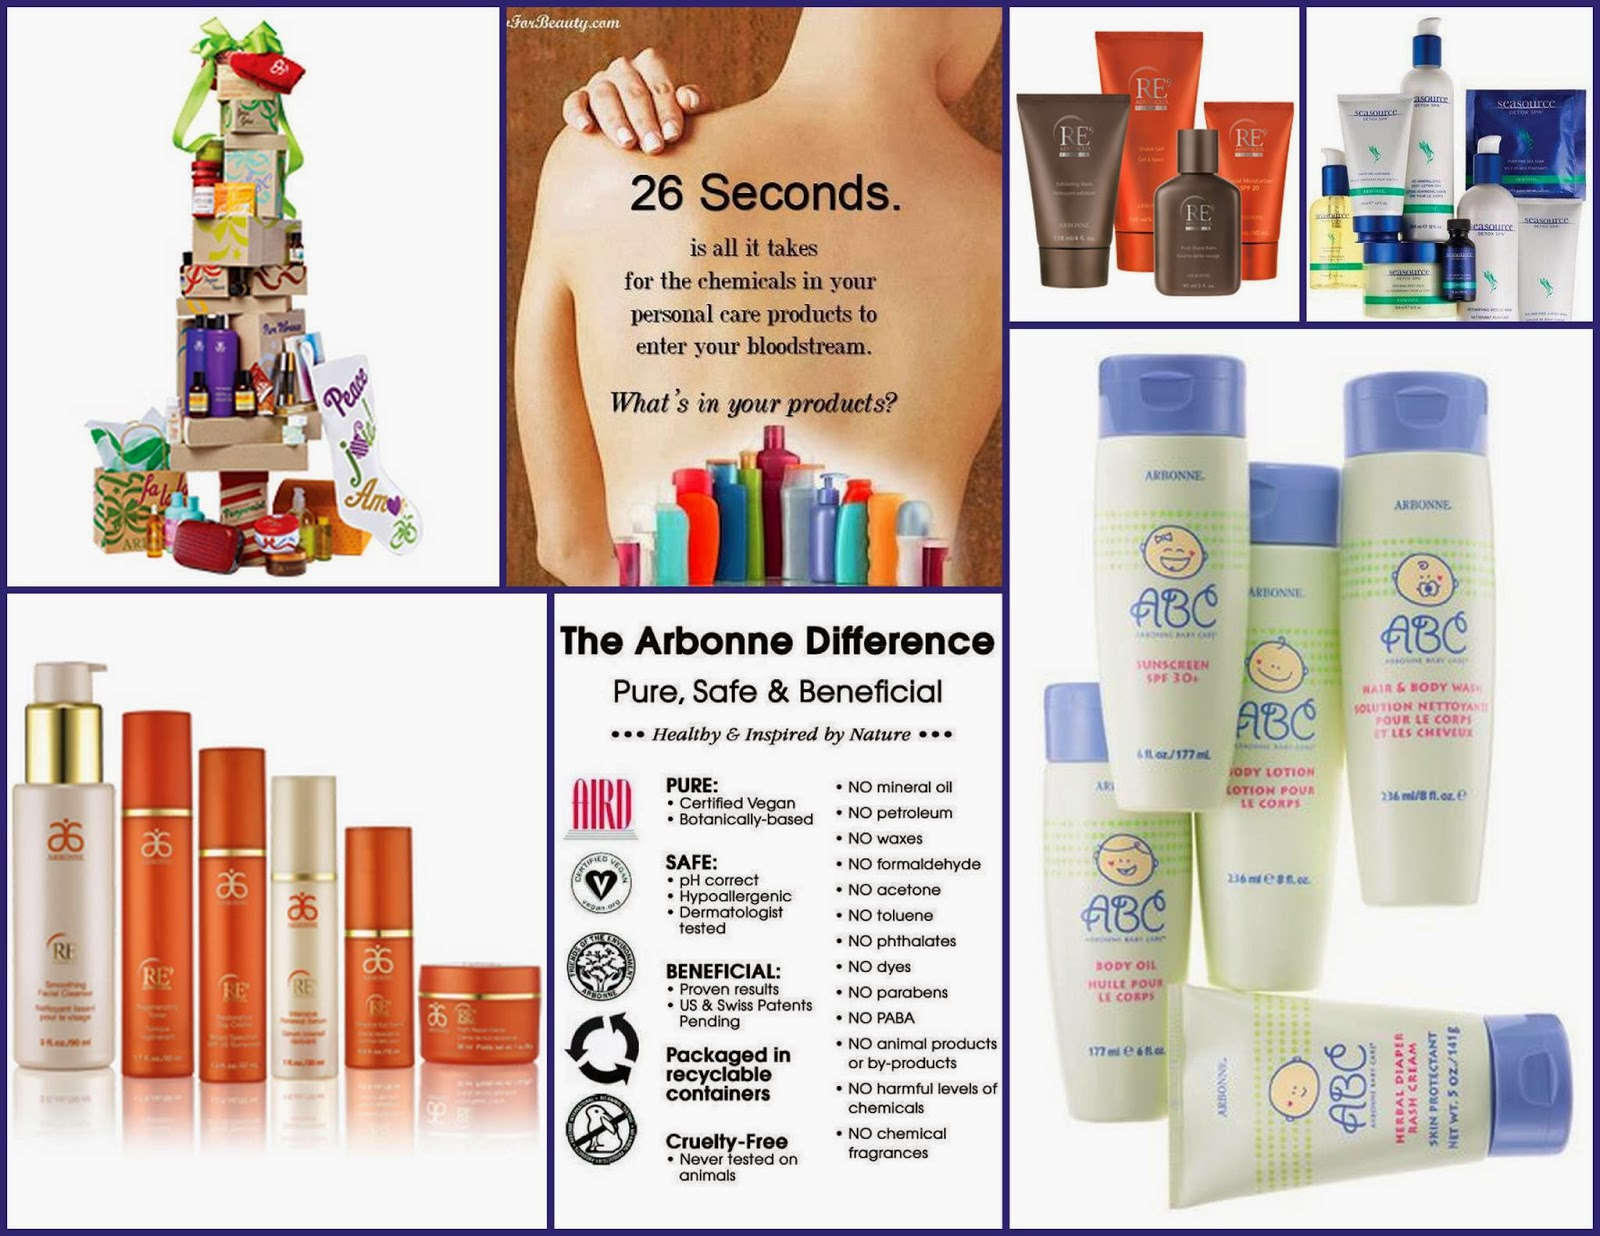 Is Arbonne Really Natural Products